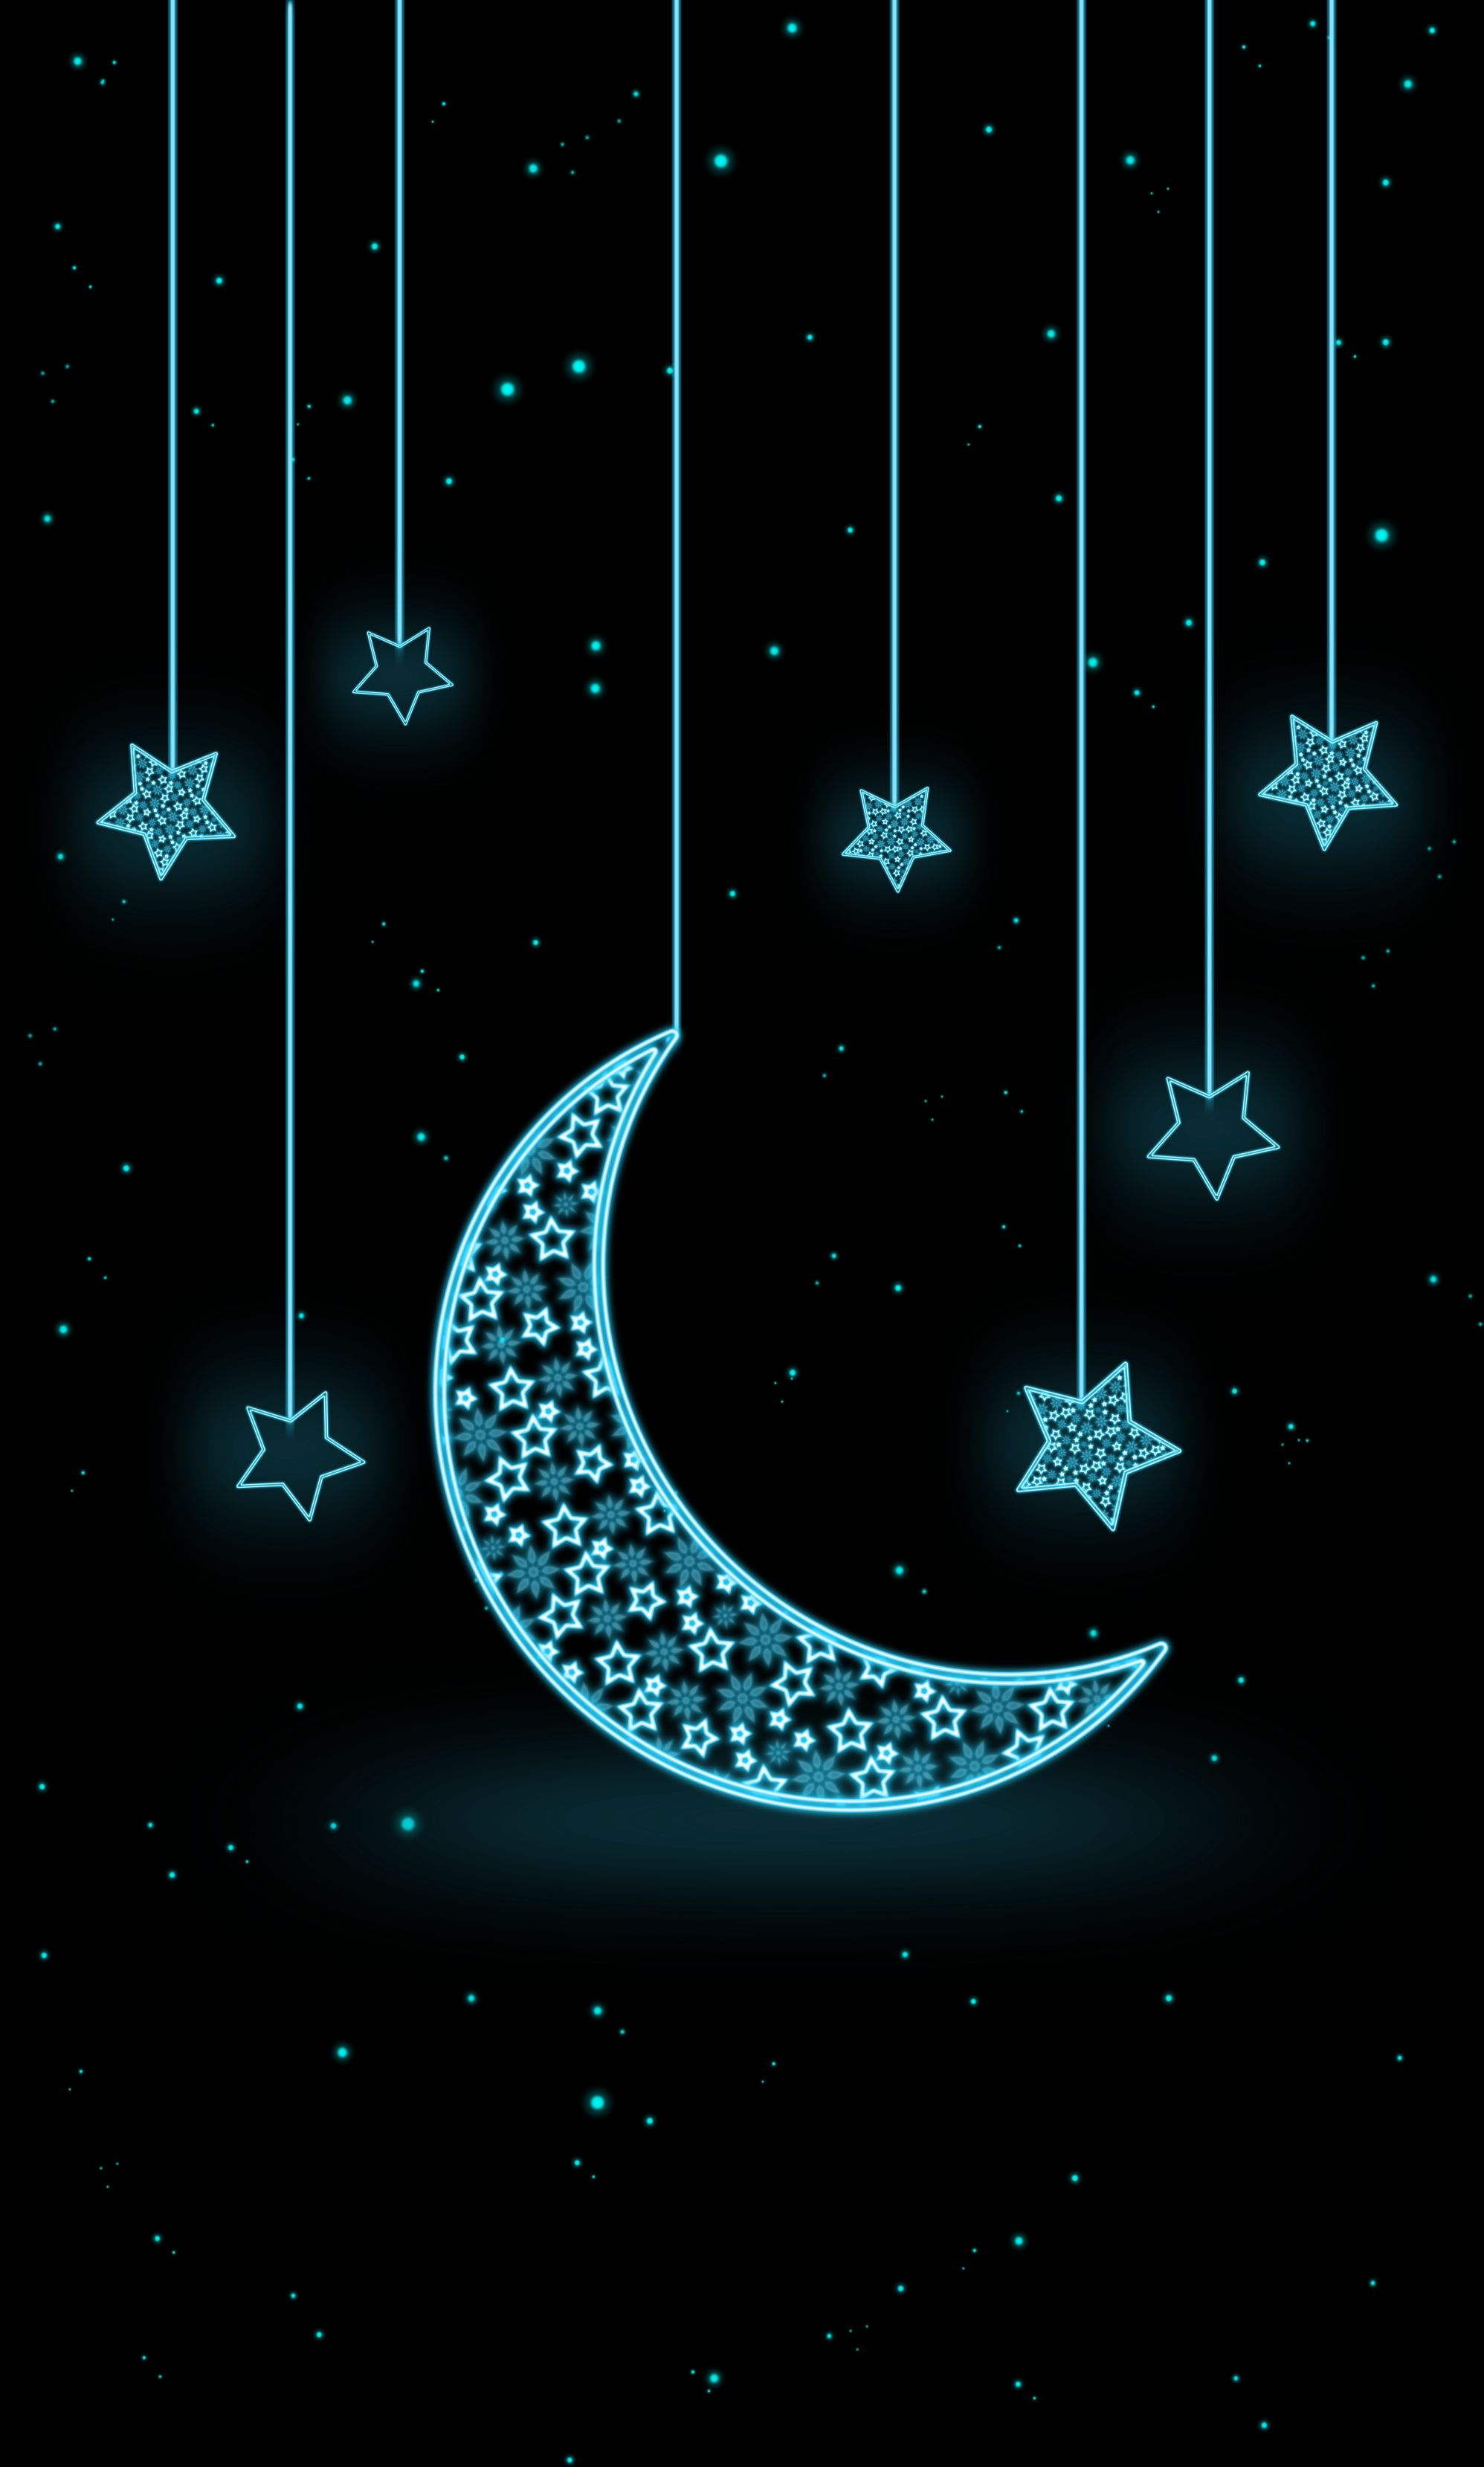 68081 download wallpaper Art, Stars, Moon, Neon, Crescent screensavers and pictures for free